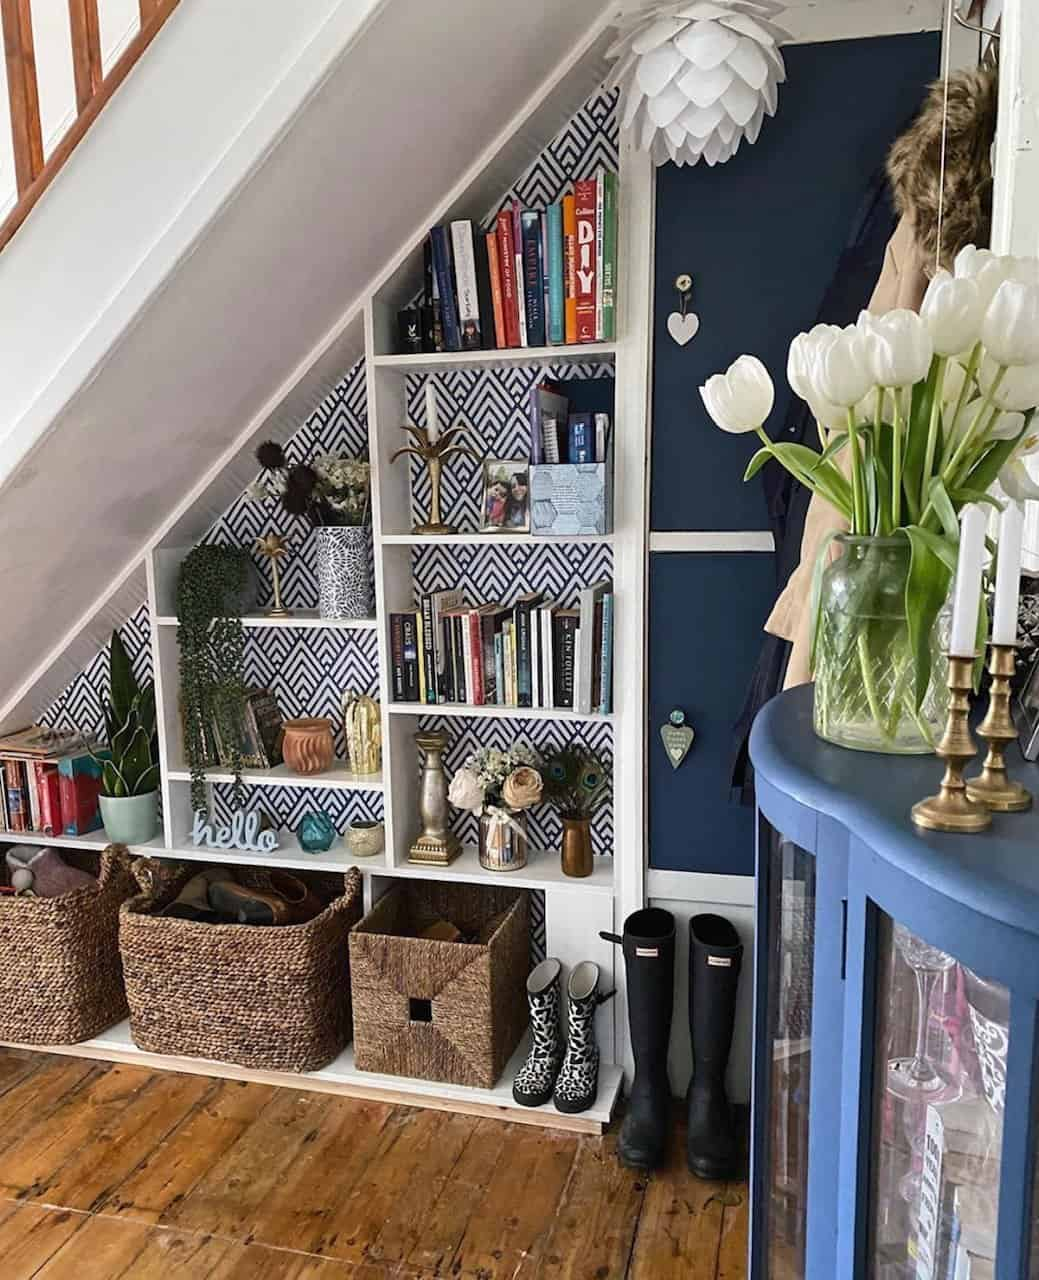 DIY Under the Staircase Pantry Shelves